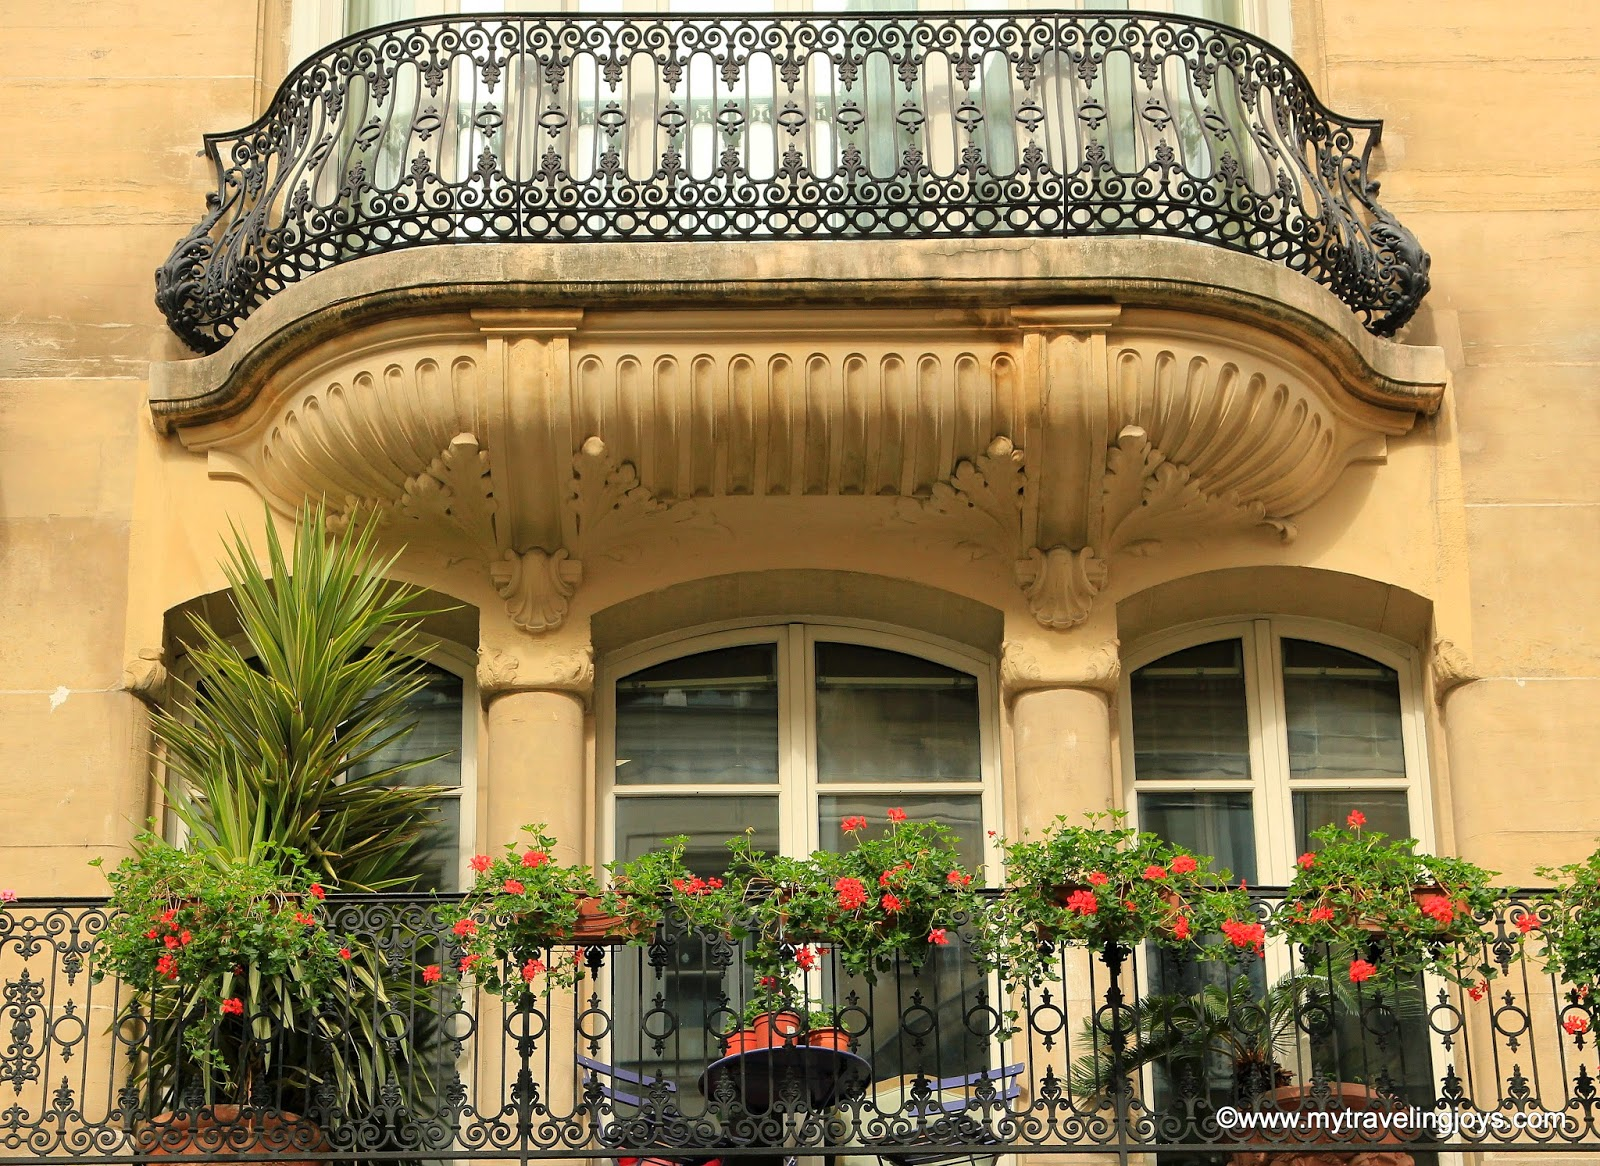 12 fantastic french window boxes in paris photo post my for French balcony